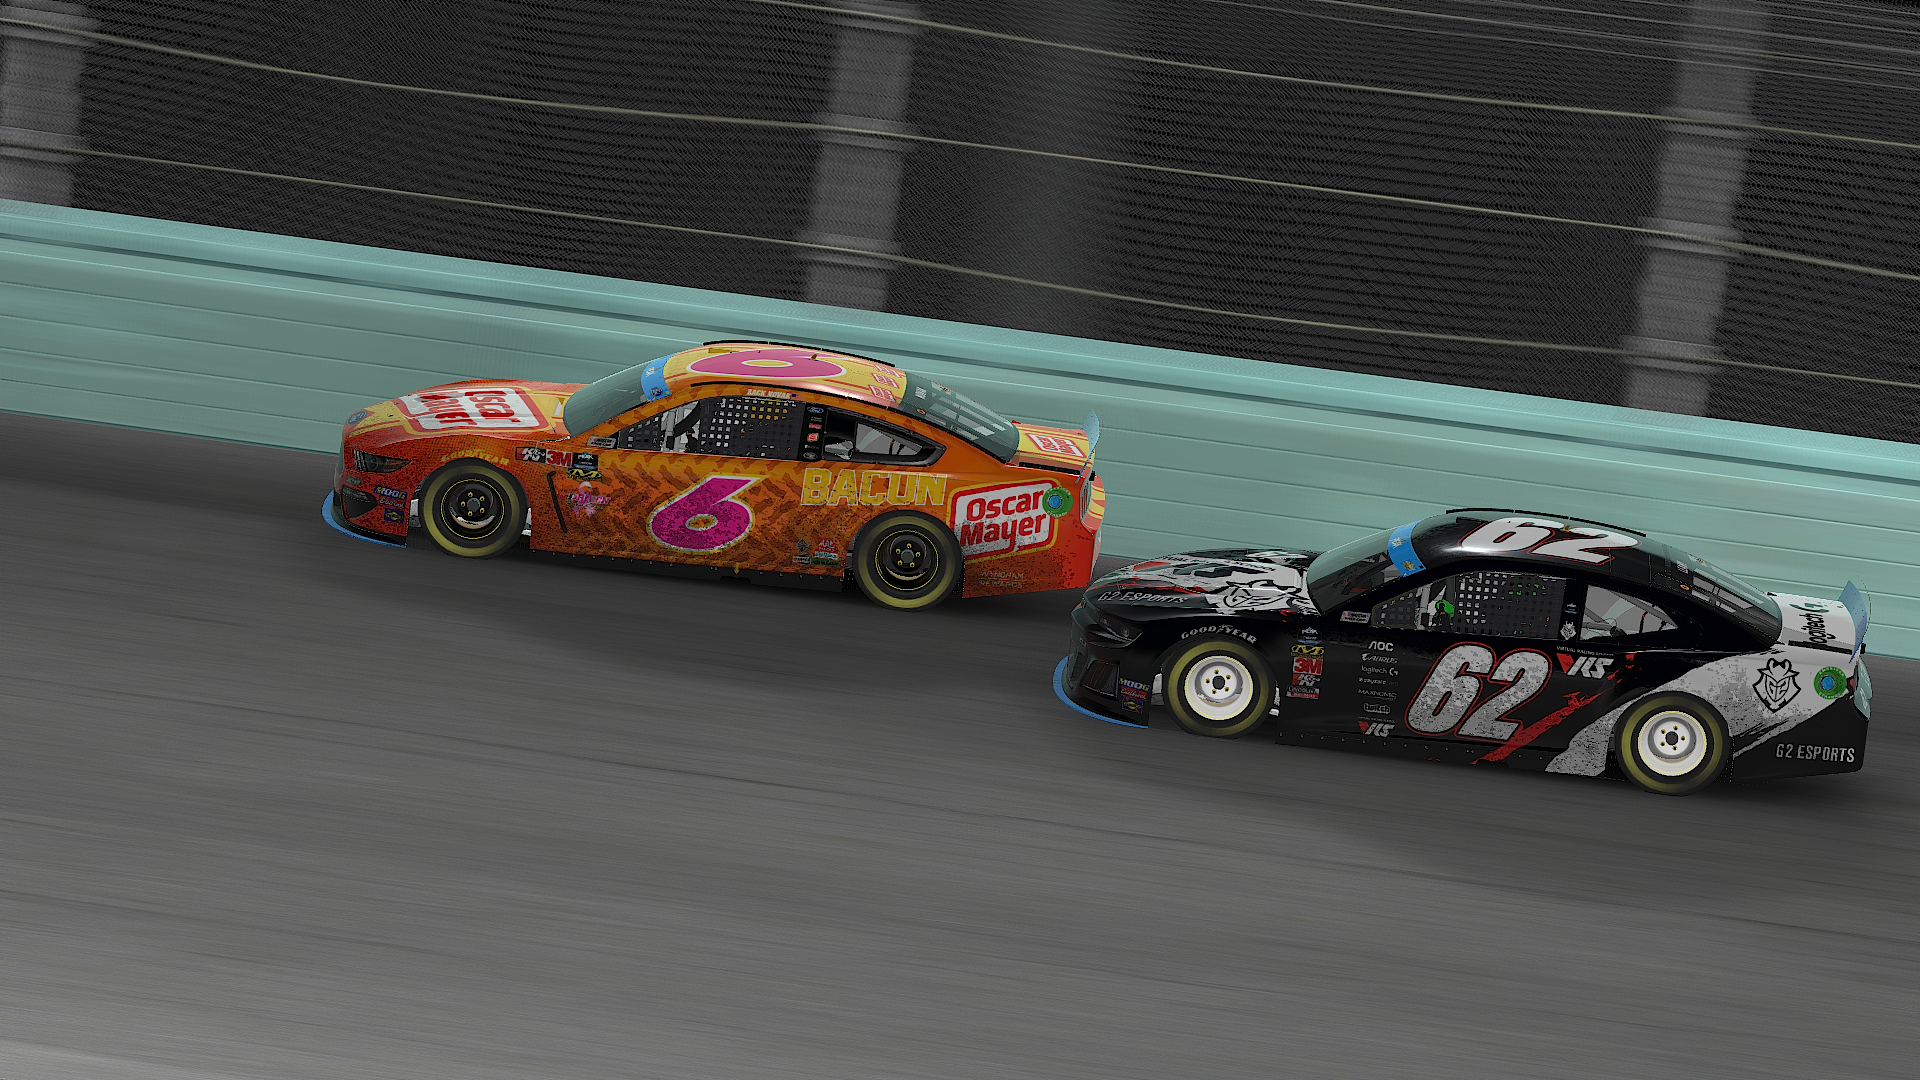 Steve Myers opens up about iRacing's place in NASCAR